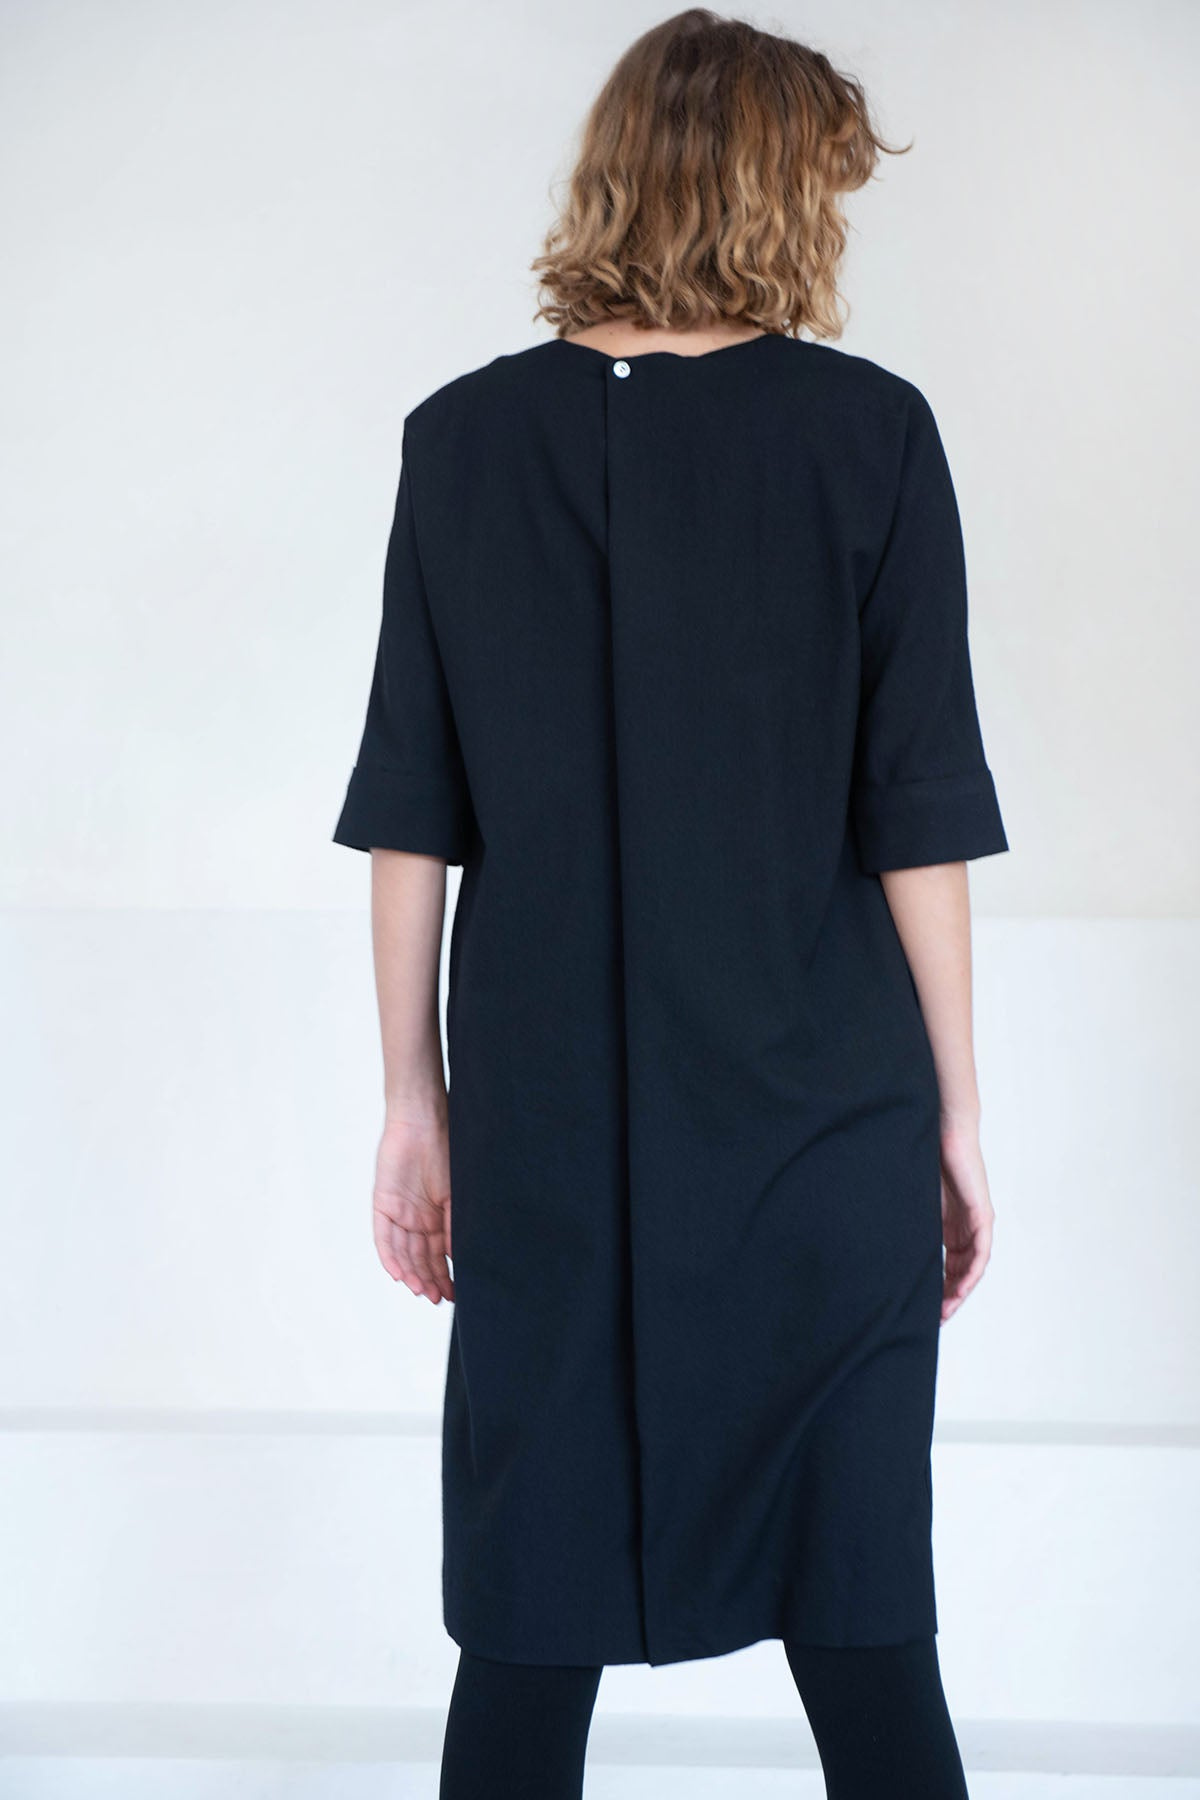 Stephan Schneider - information dress, black